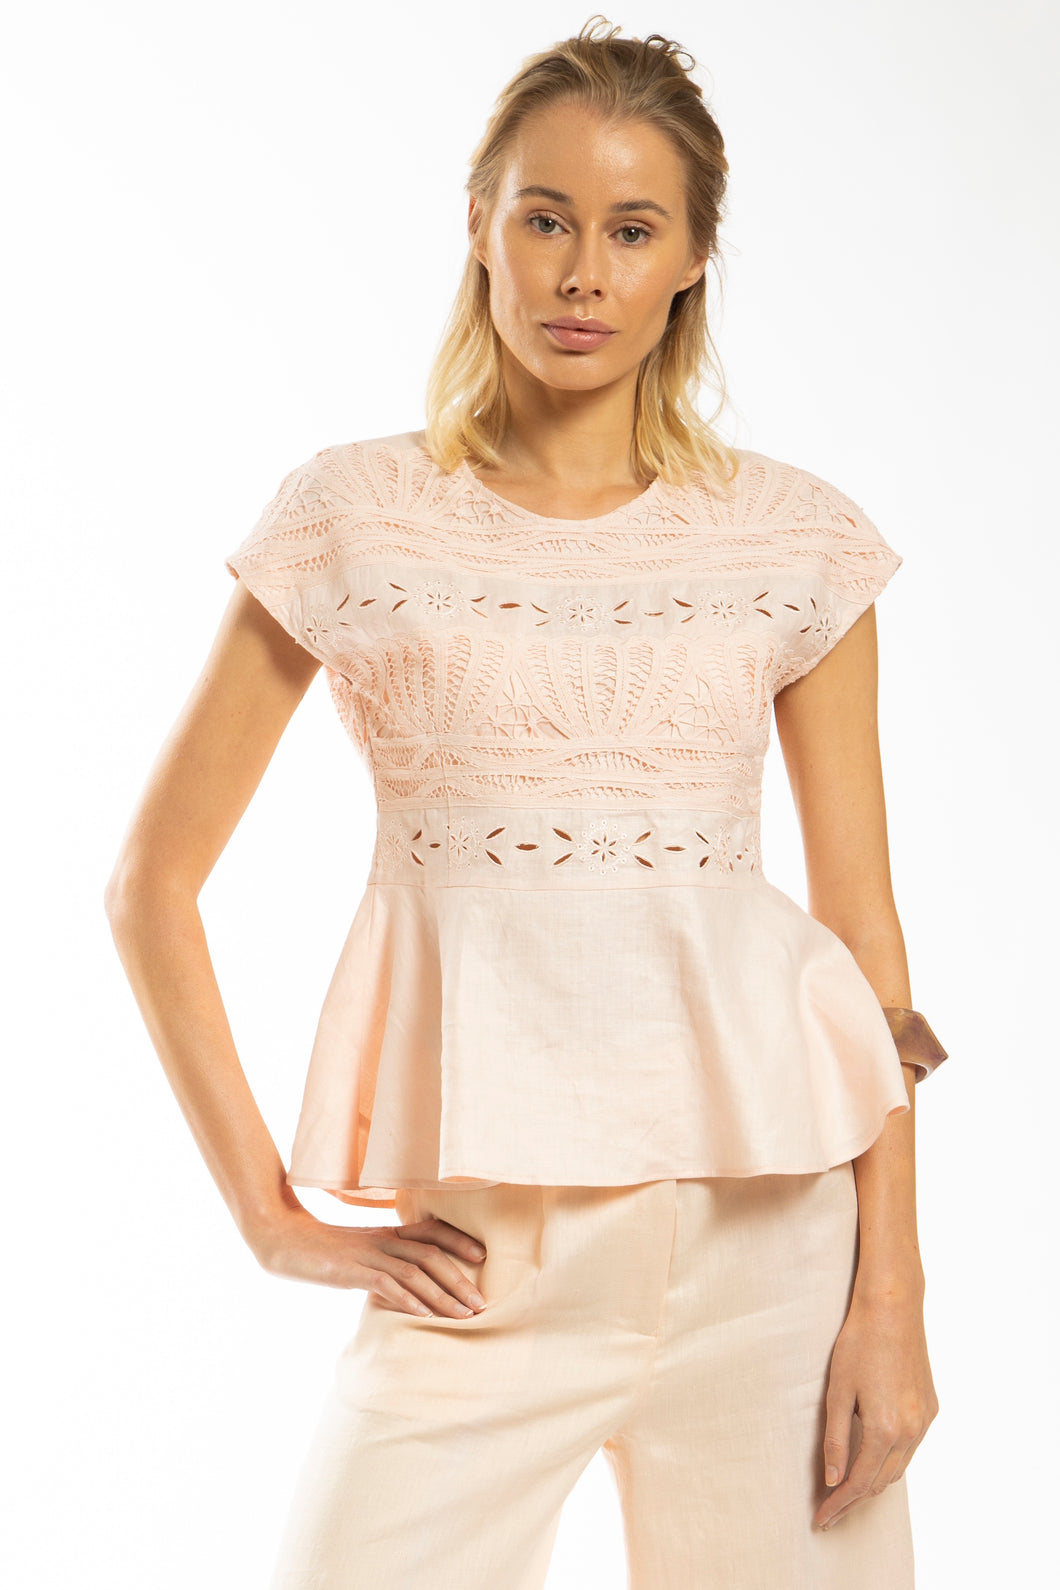 Made in NYC: UpCycled Peplum Lace Top